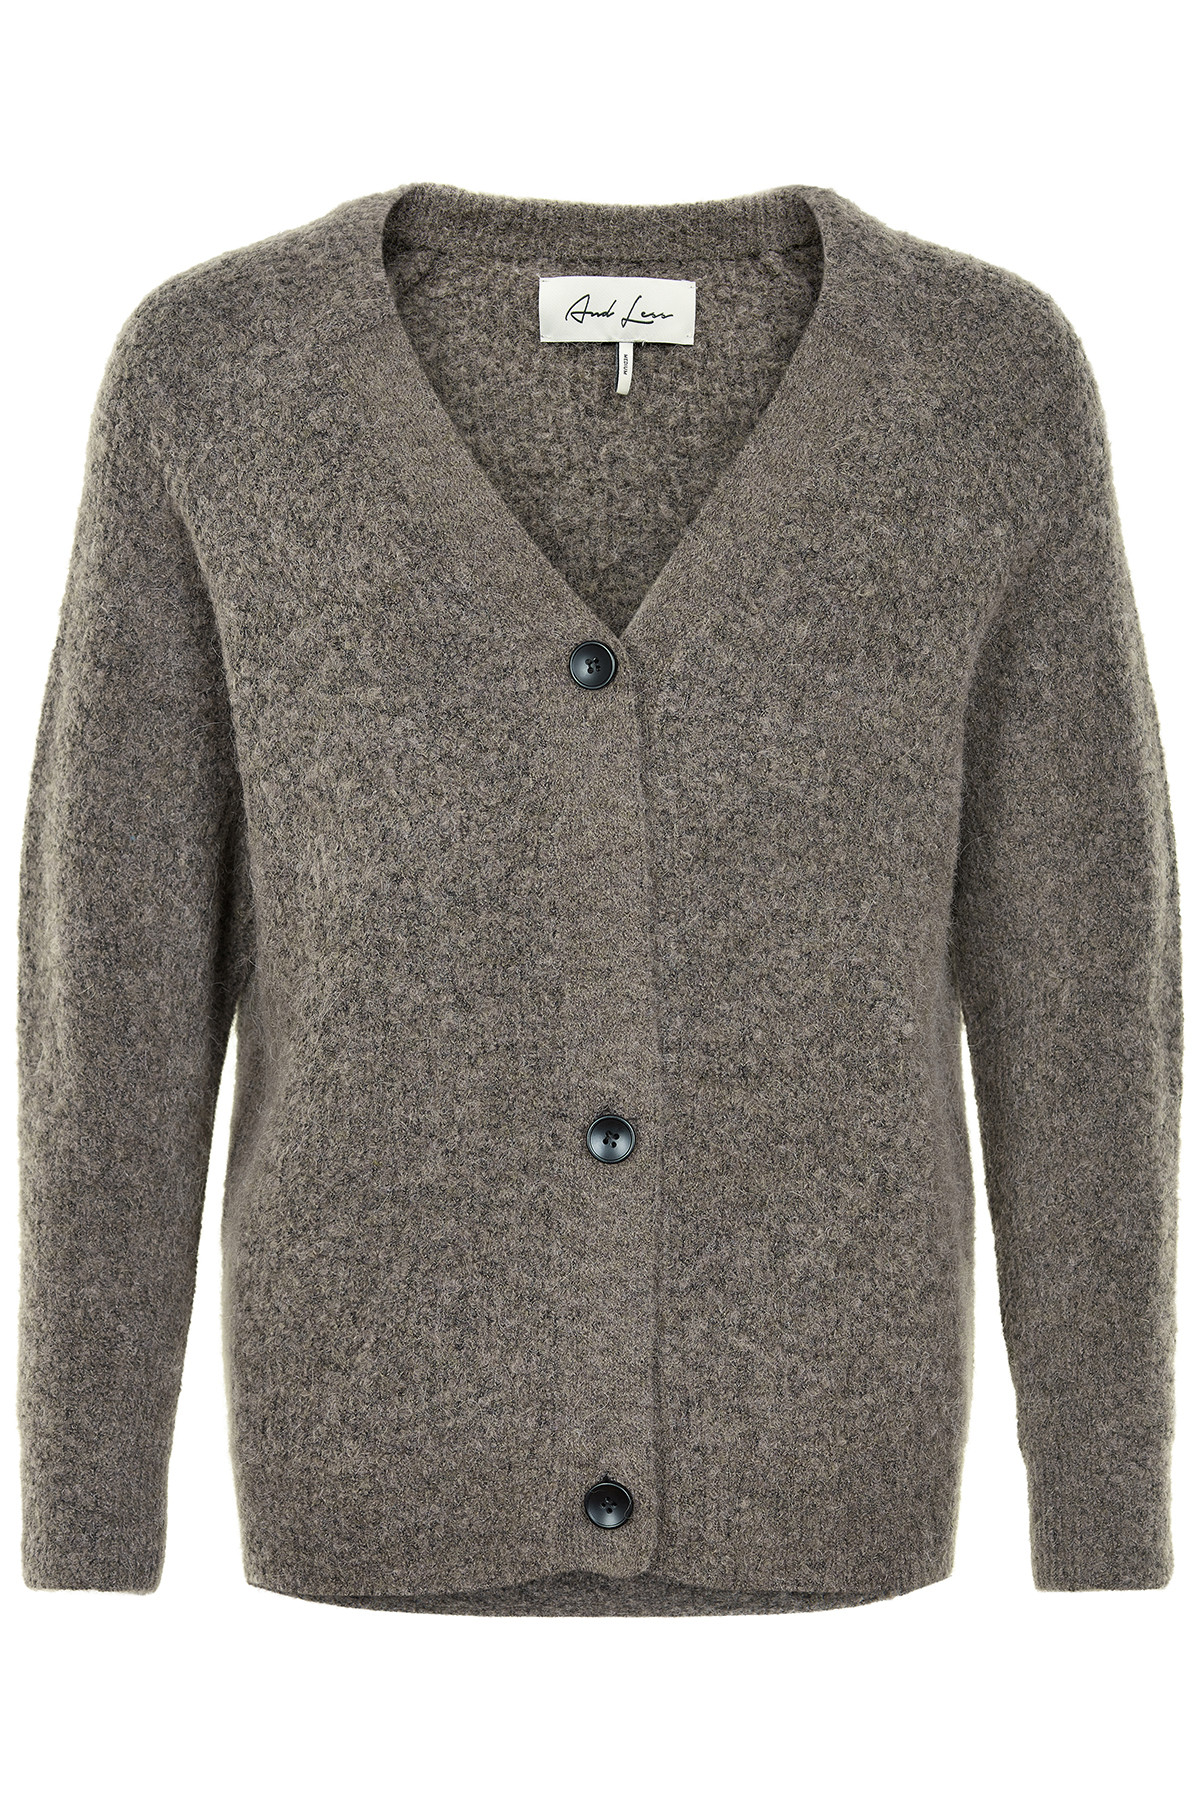 Image of   AND LESS ALENEN CARDIGAN 5519210 W (Walnut, XL)